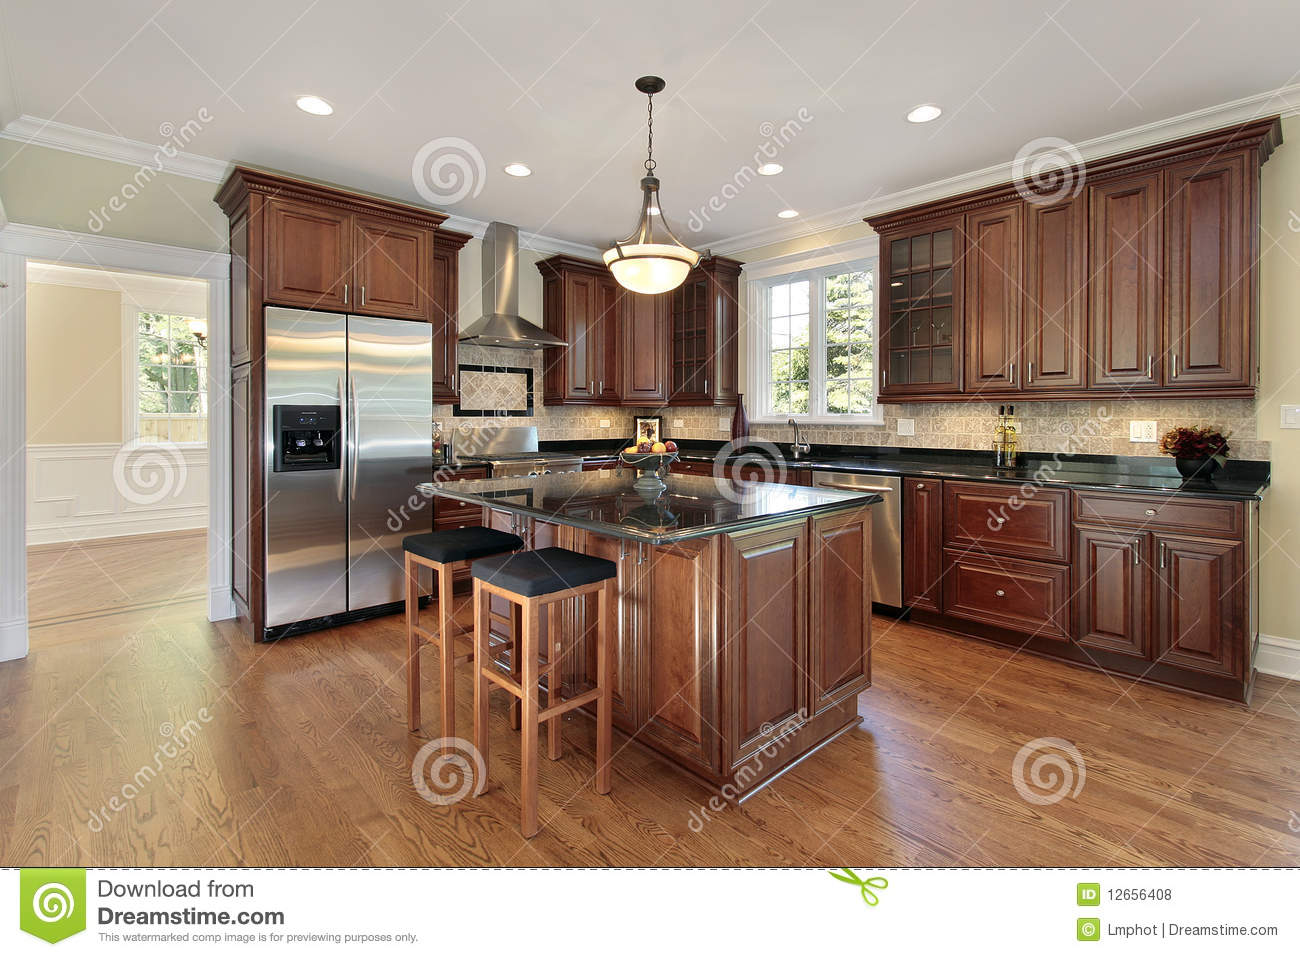 Kitchen in new construction home royalty free stock photos for Building a new kitchen